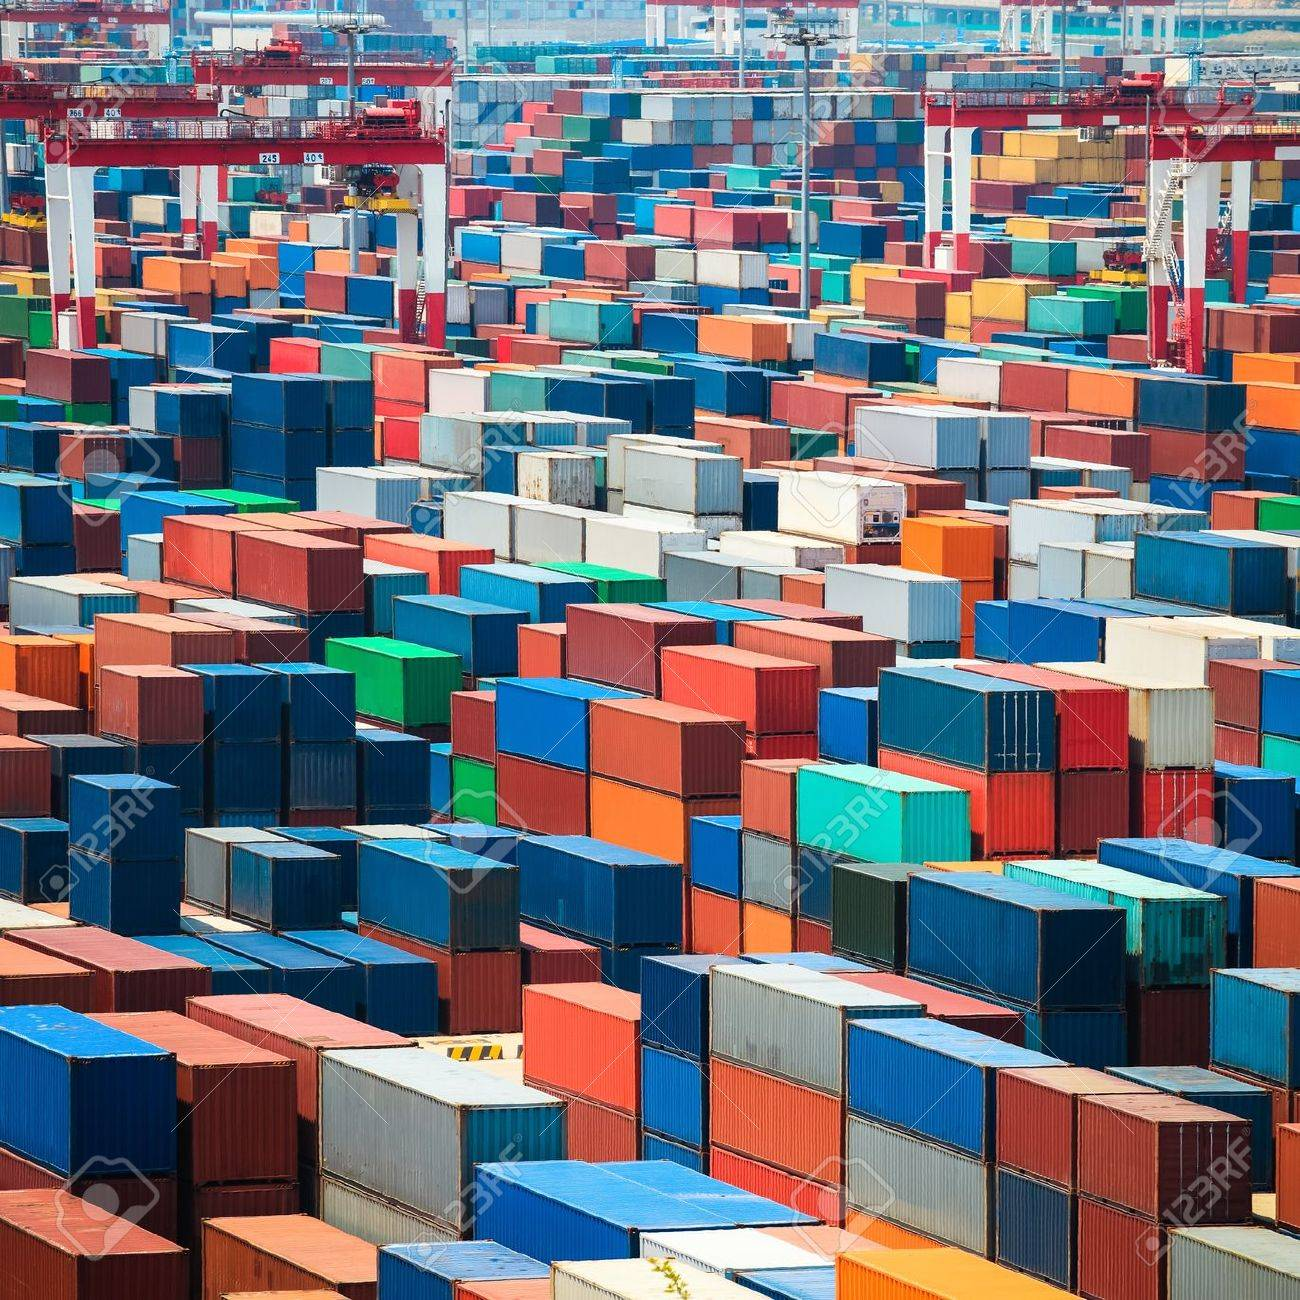 Numerous Shipping Containers In Port Stock Photo Picture And - Shipping containers